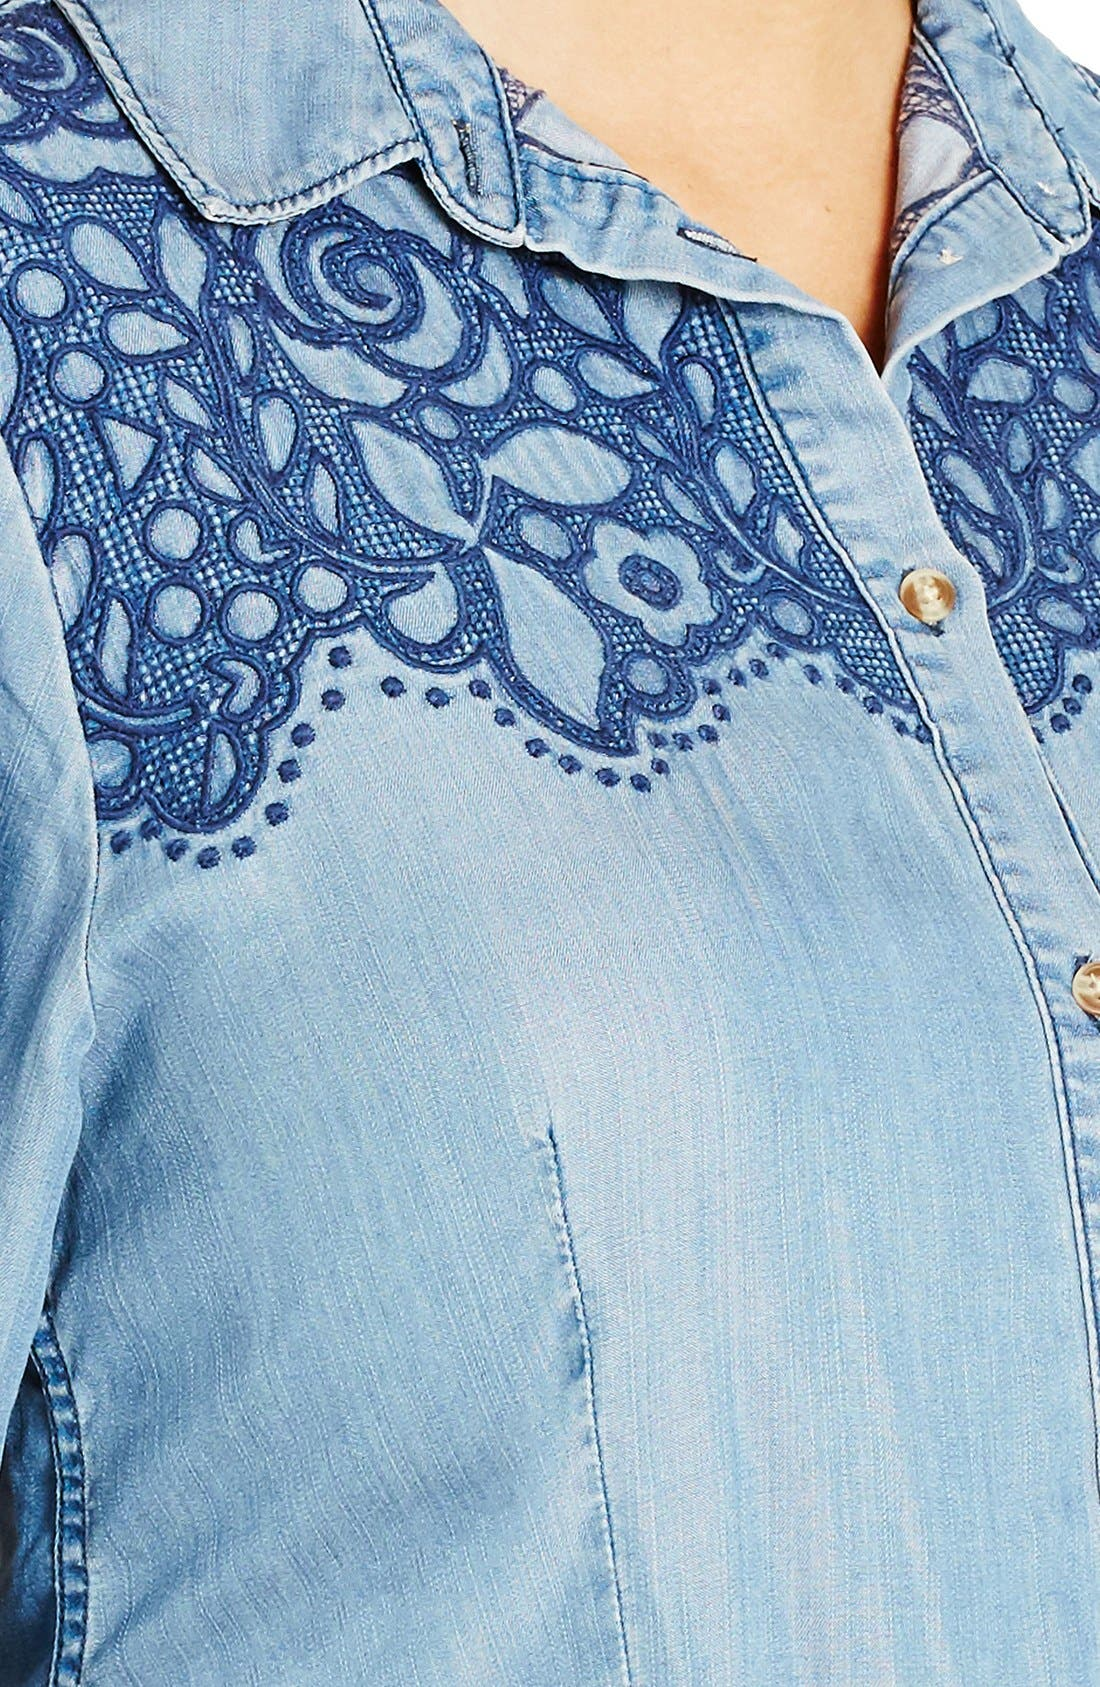 'Rodeo' Embroidered Denim Shirt,                             Alternate thumbnail 2, color,                             409